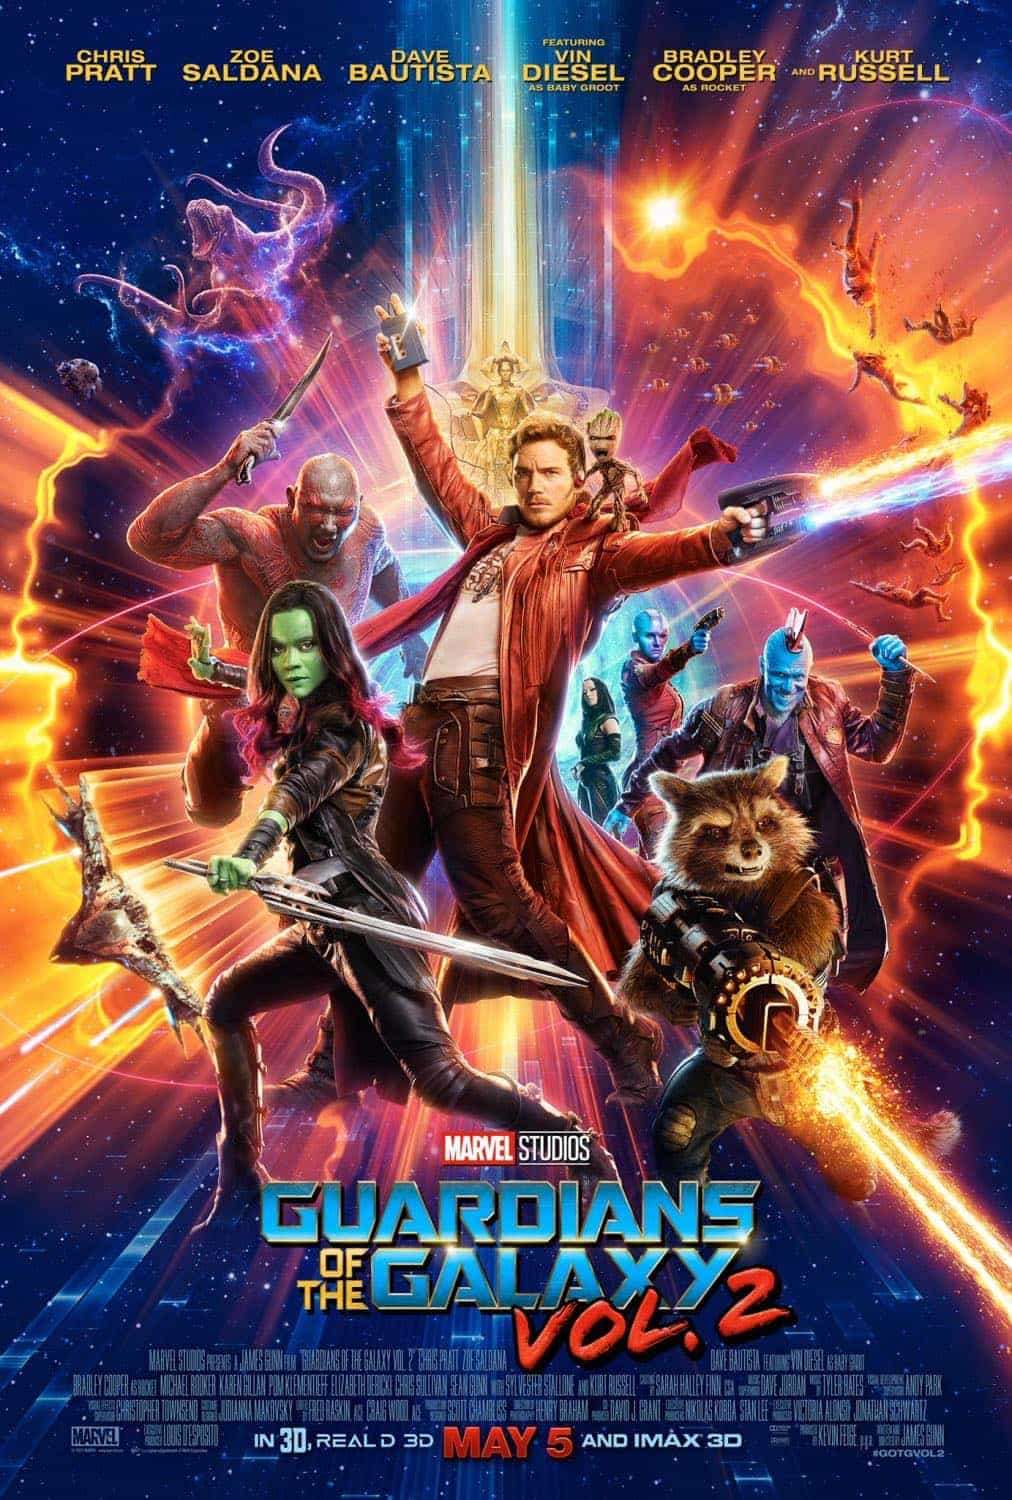 Guardians Of The Galaxy Vol 2 Blu Ray 4k And Dvd Release Details Seat42f